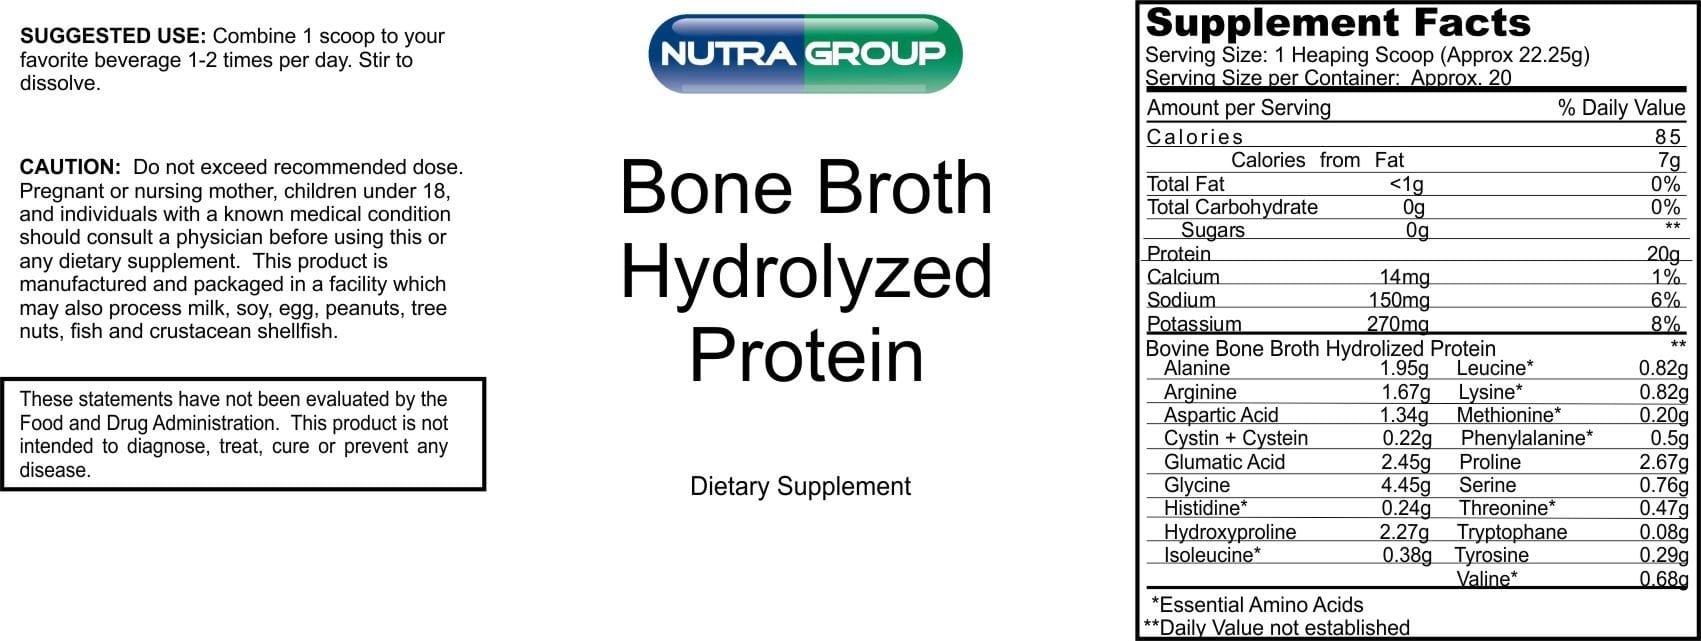 Private Label Bone Broth Hydrolyzed Protein